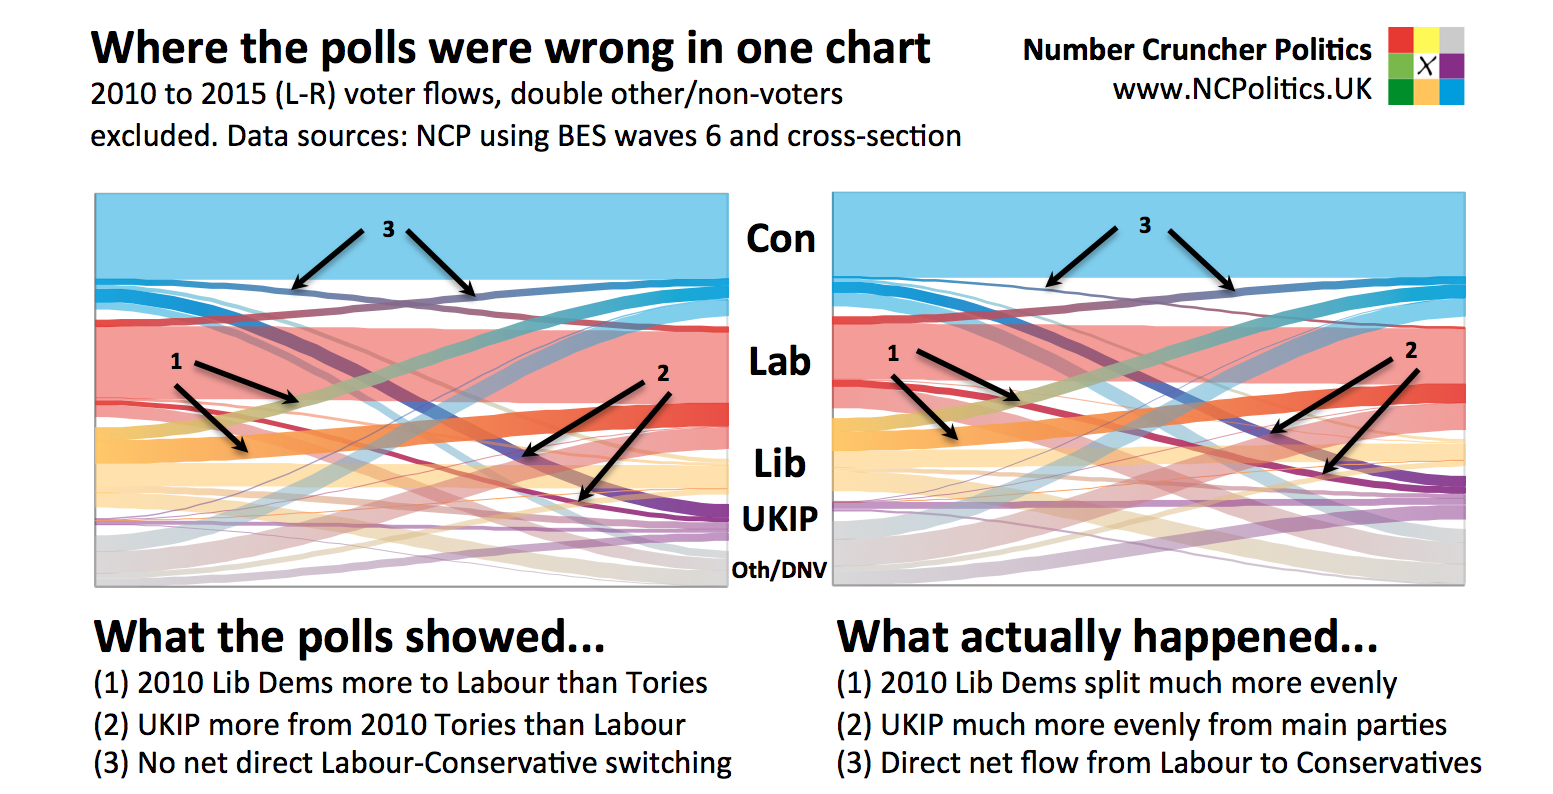 Where the polls were wrong in one chart 2010 to 2015 (L-R) voter flows, double other/non-voters excluded. Data sources: NCP using BES waves 6 and cross-section